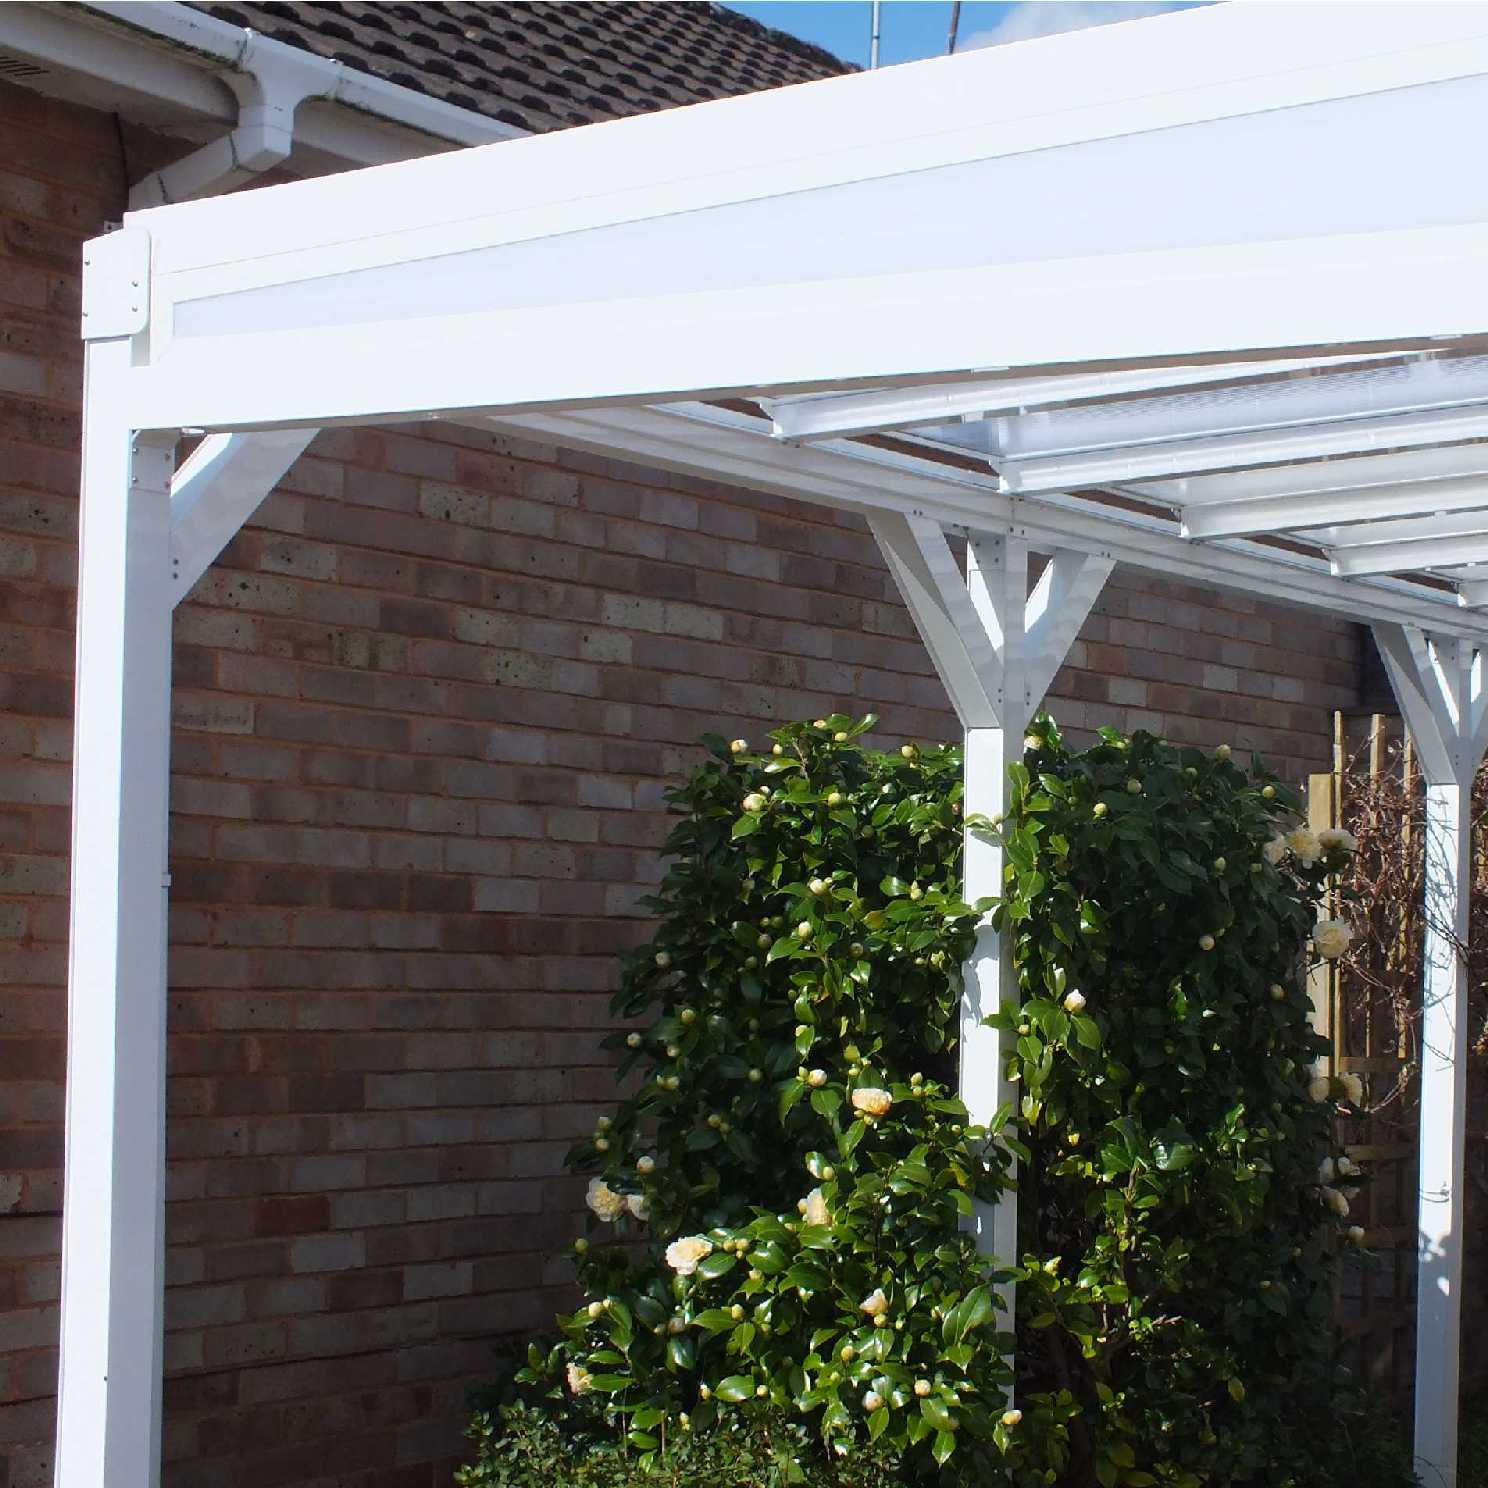 Omega Smart White Lean-To Canopy with 16mm Polycarbonate Glazing - 12.0m (W) x 2.5m (P), (5) Supporting Posts from Omega Build